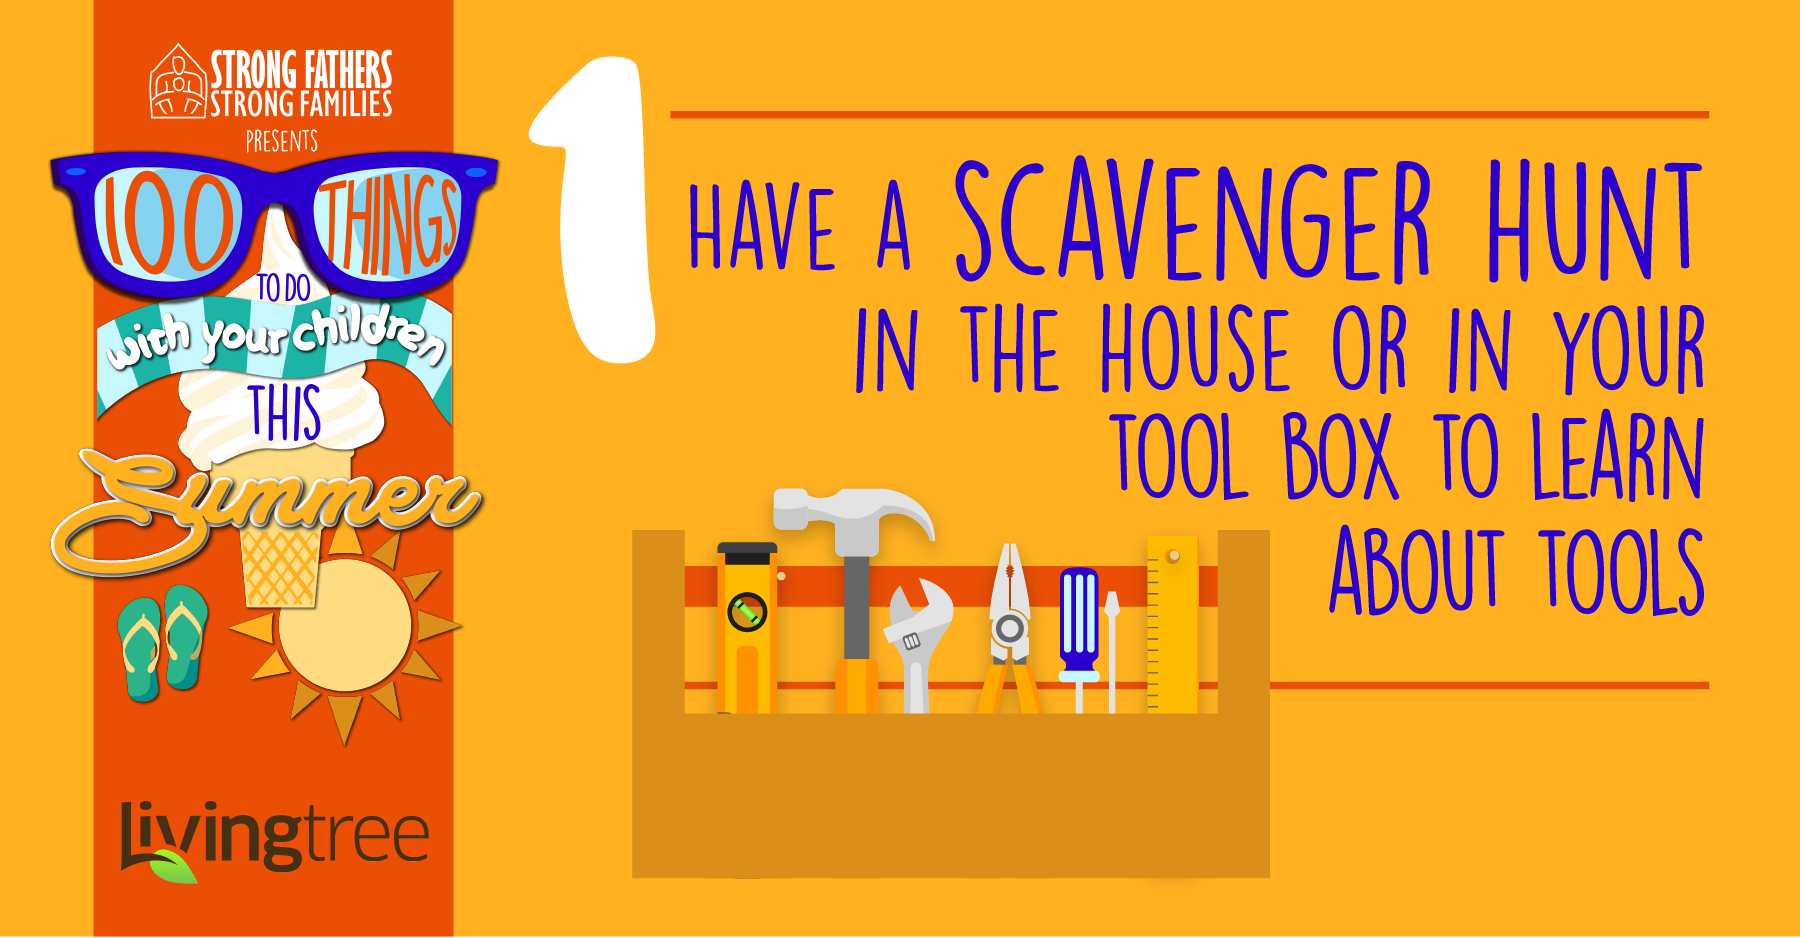 Have a scavenger hunt in the house or in your tool box to learn about tools